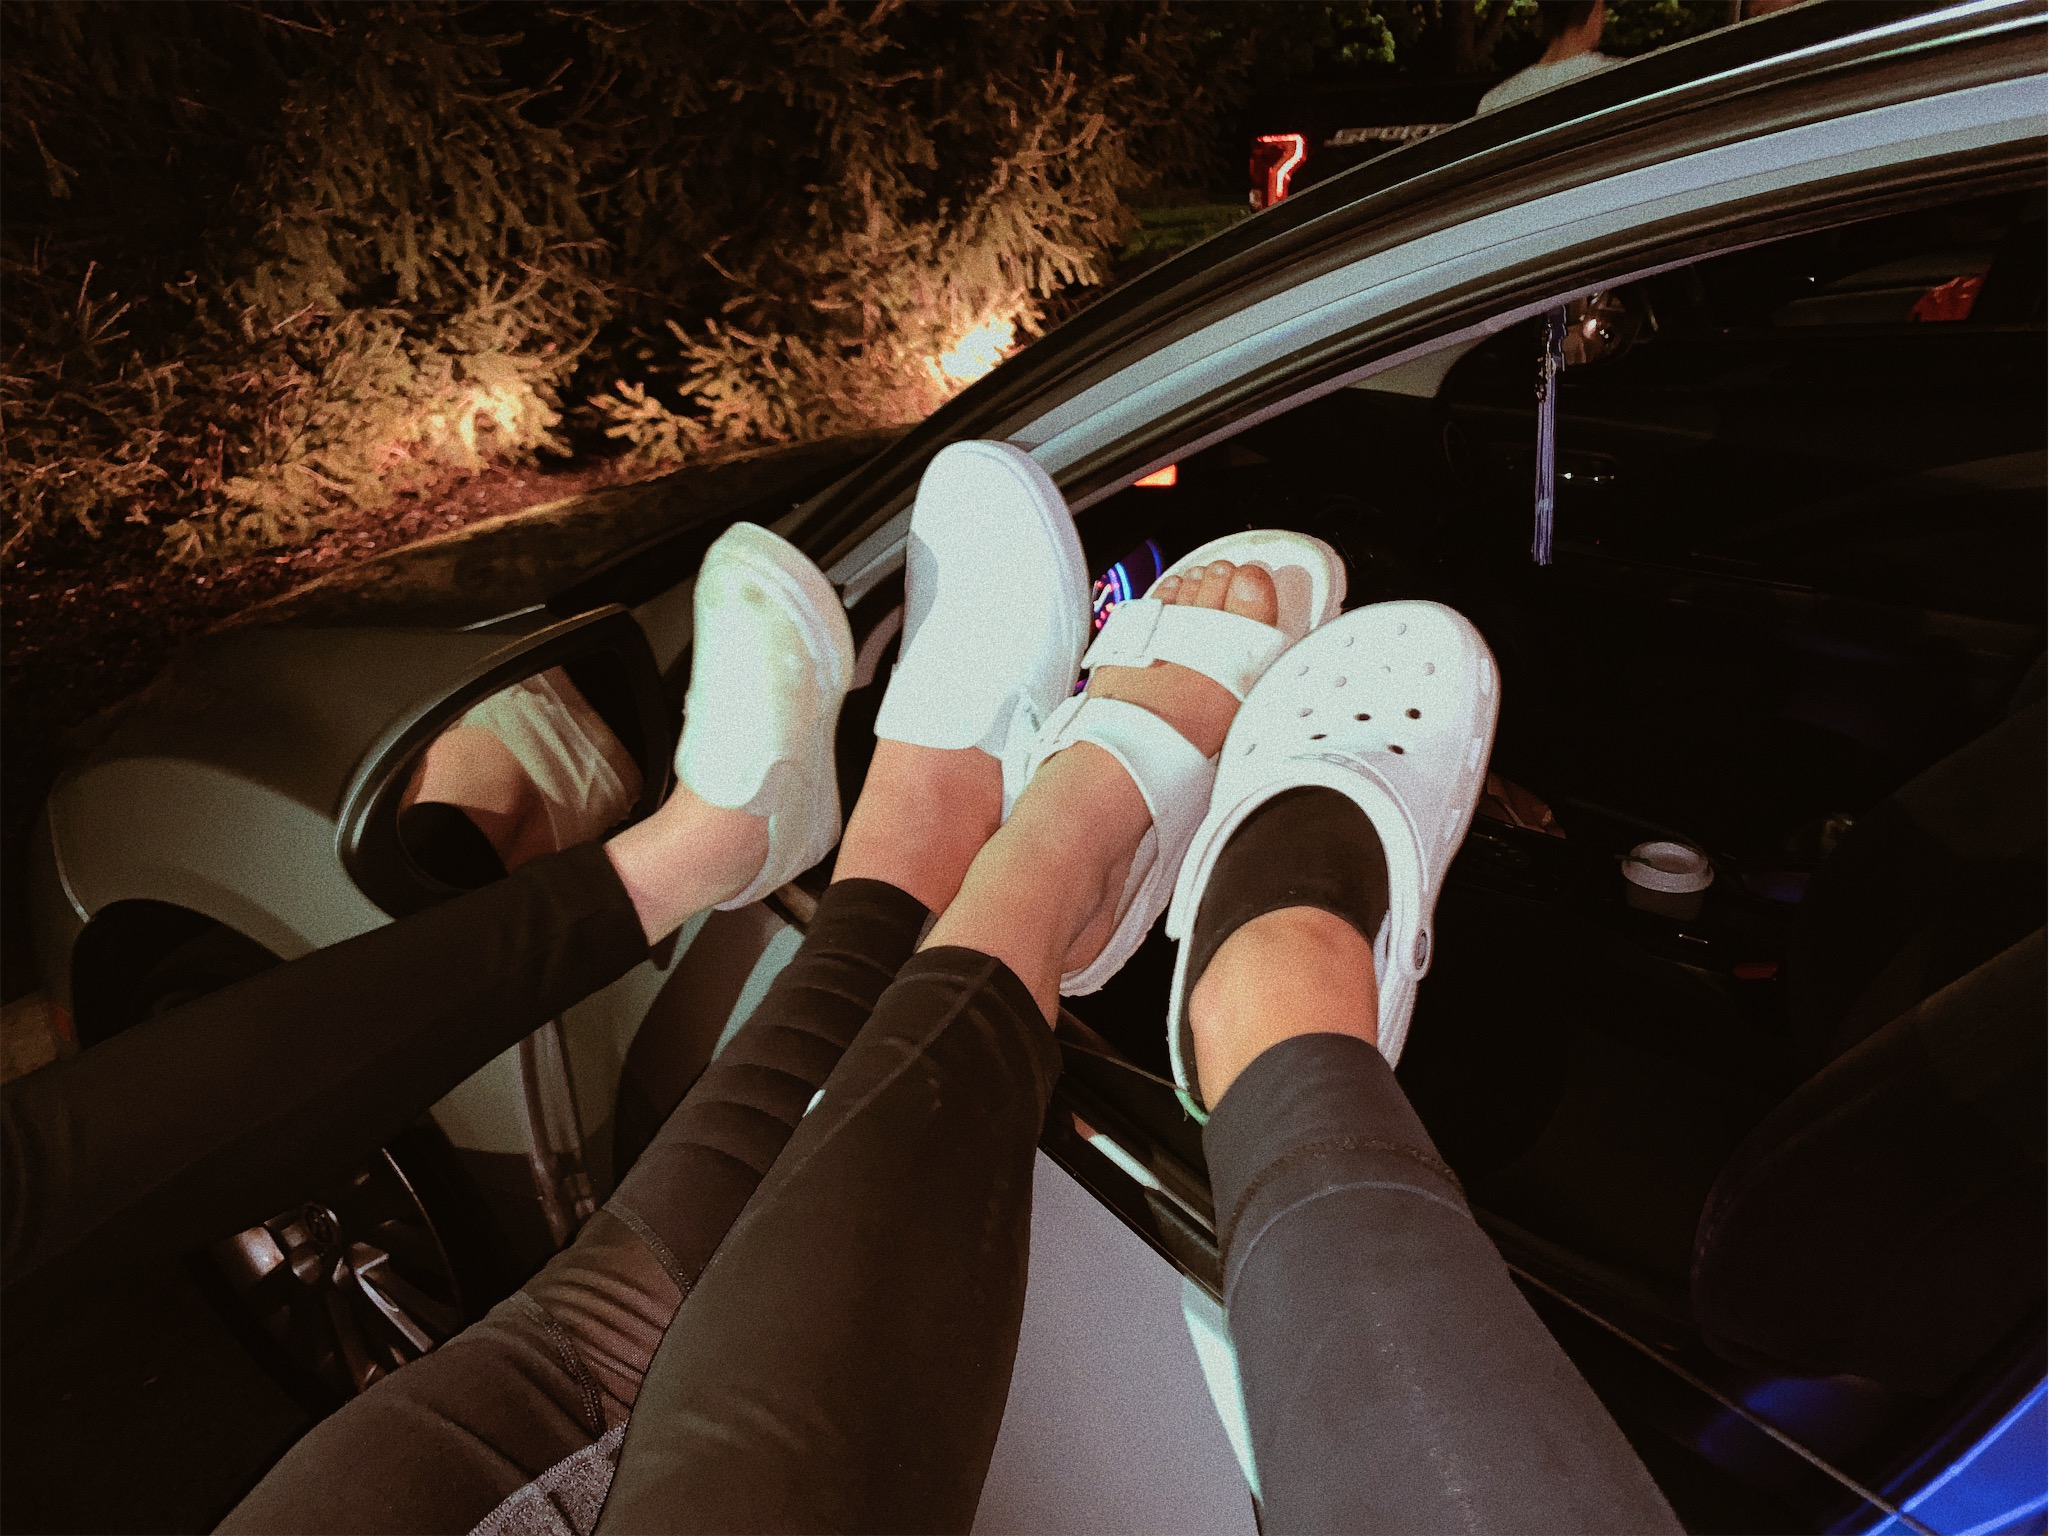 White shoes are the bestest (but crocs